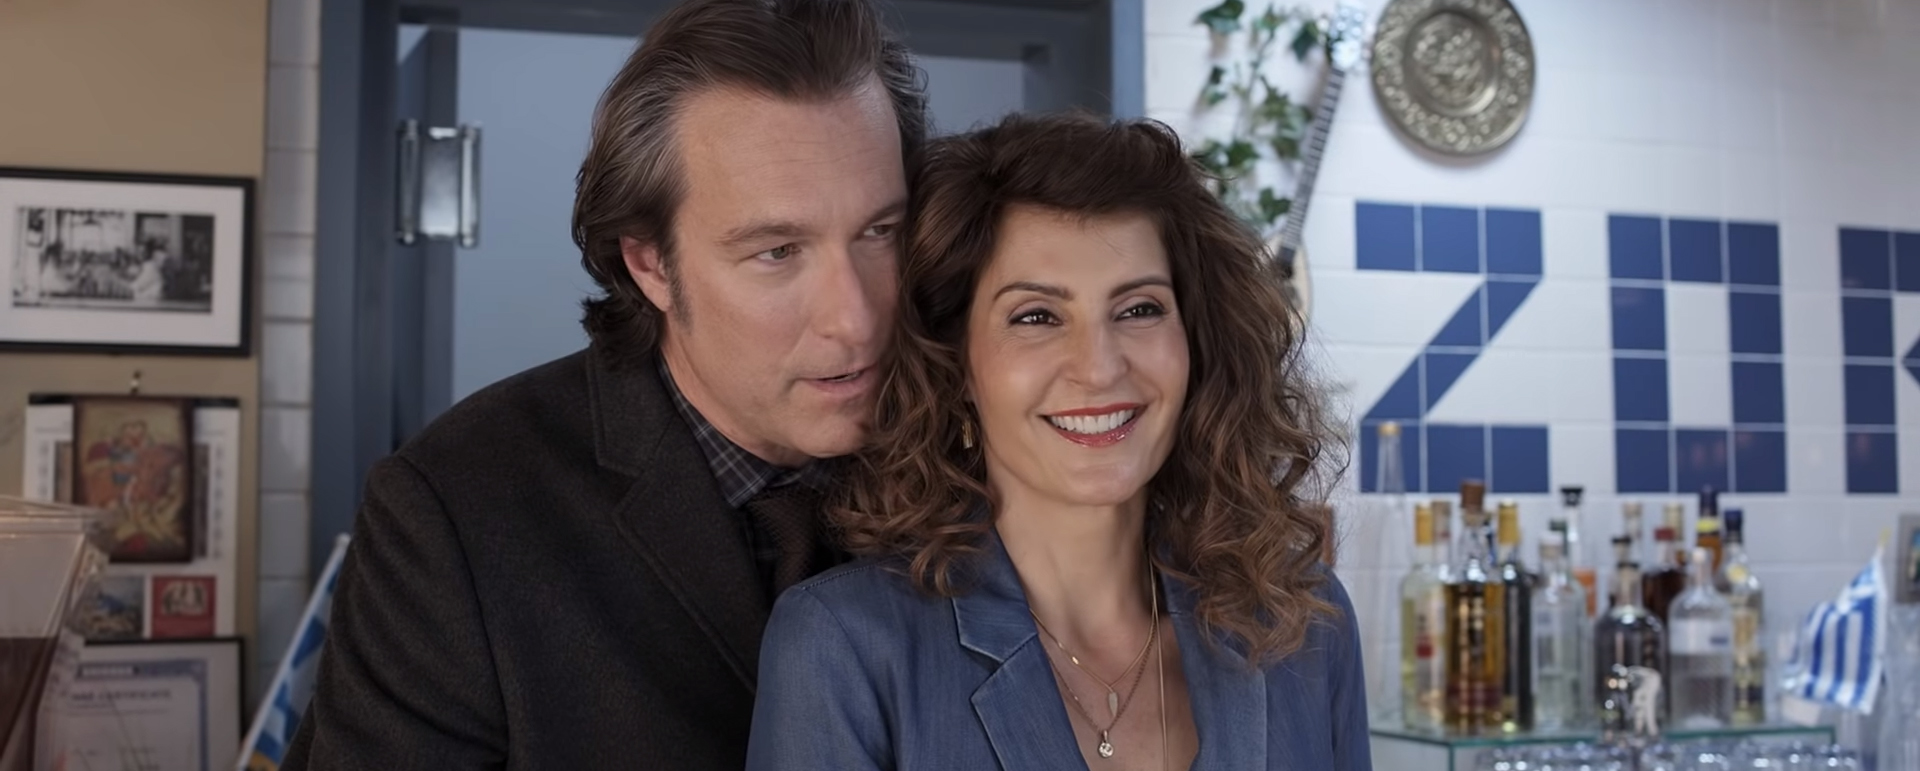 My Big Fat Greek Wedding 2. Image Credit: Universal.